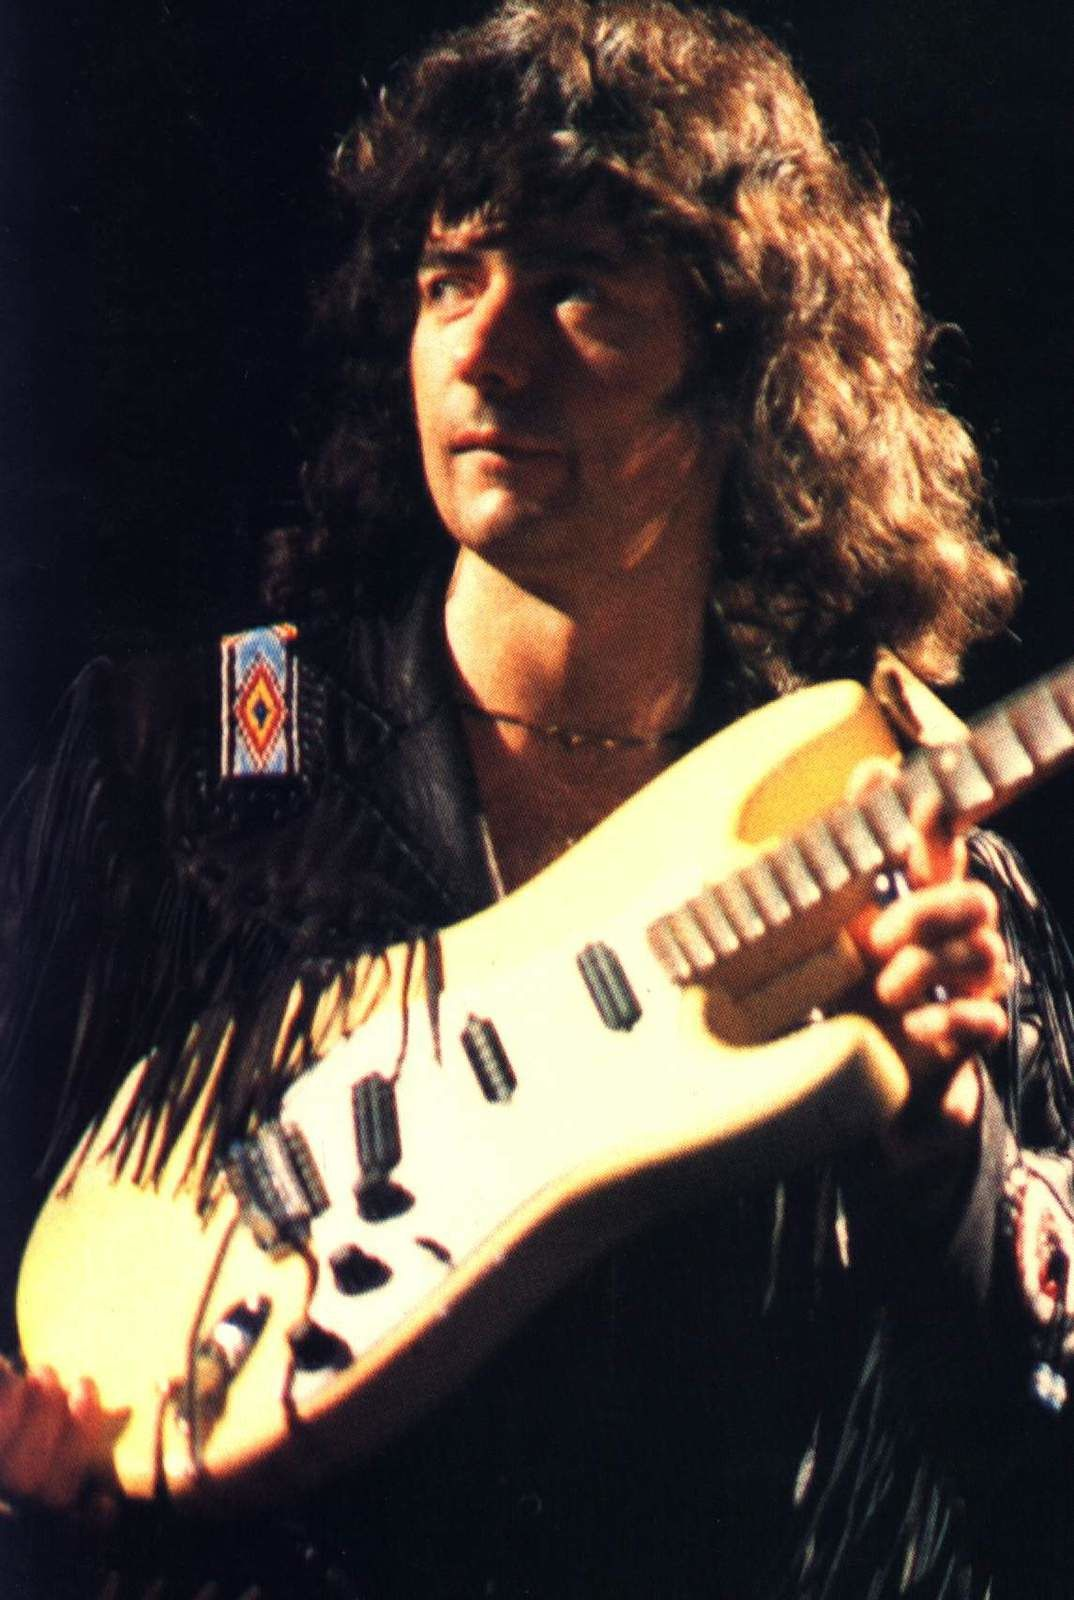 Ritchie Blackmore, 1975